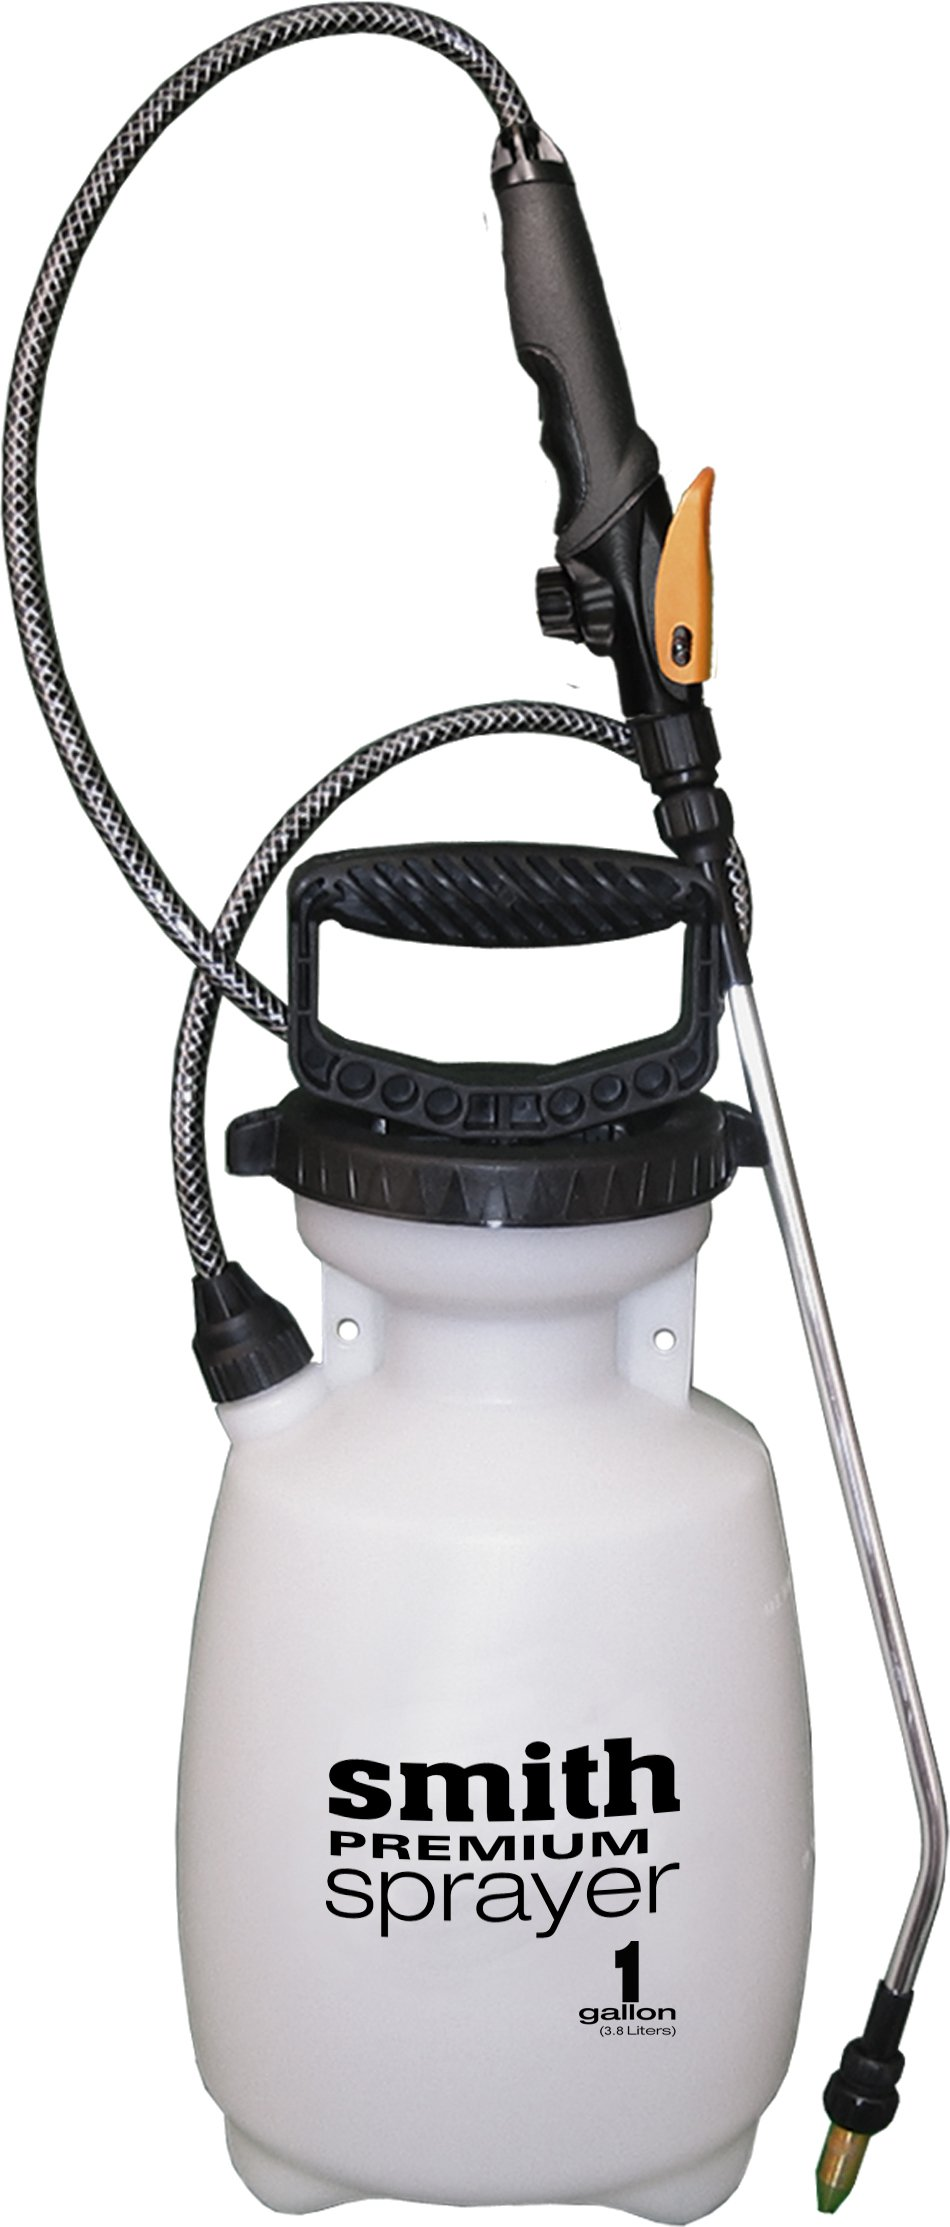 Smith Premium 190363 1-Gallon Multi-Purpose Sprayer for Killing Weeds, Cleaning, or Applying Insecticides by D.B. Smith